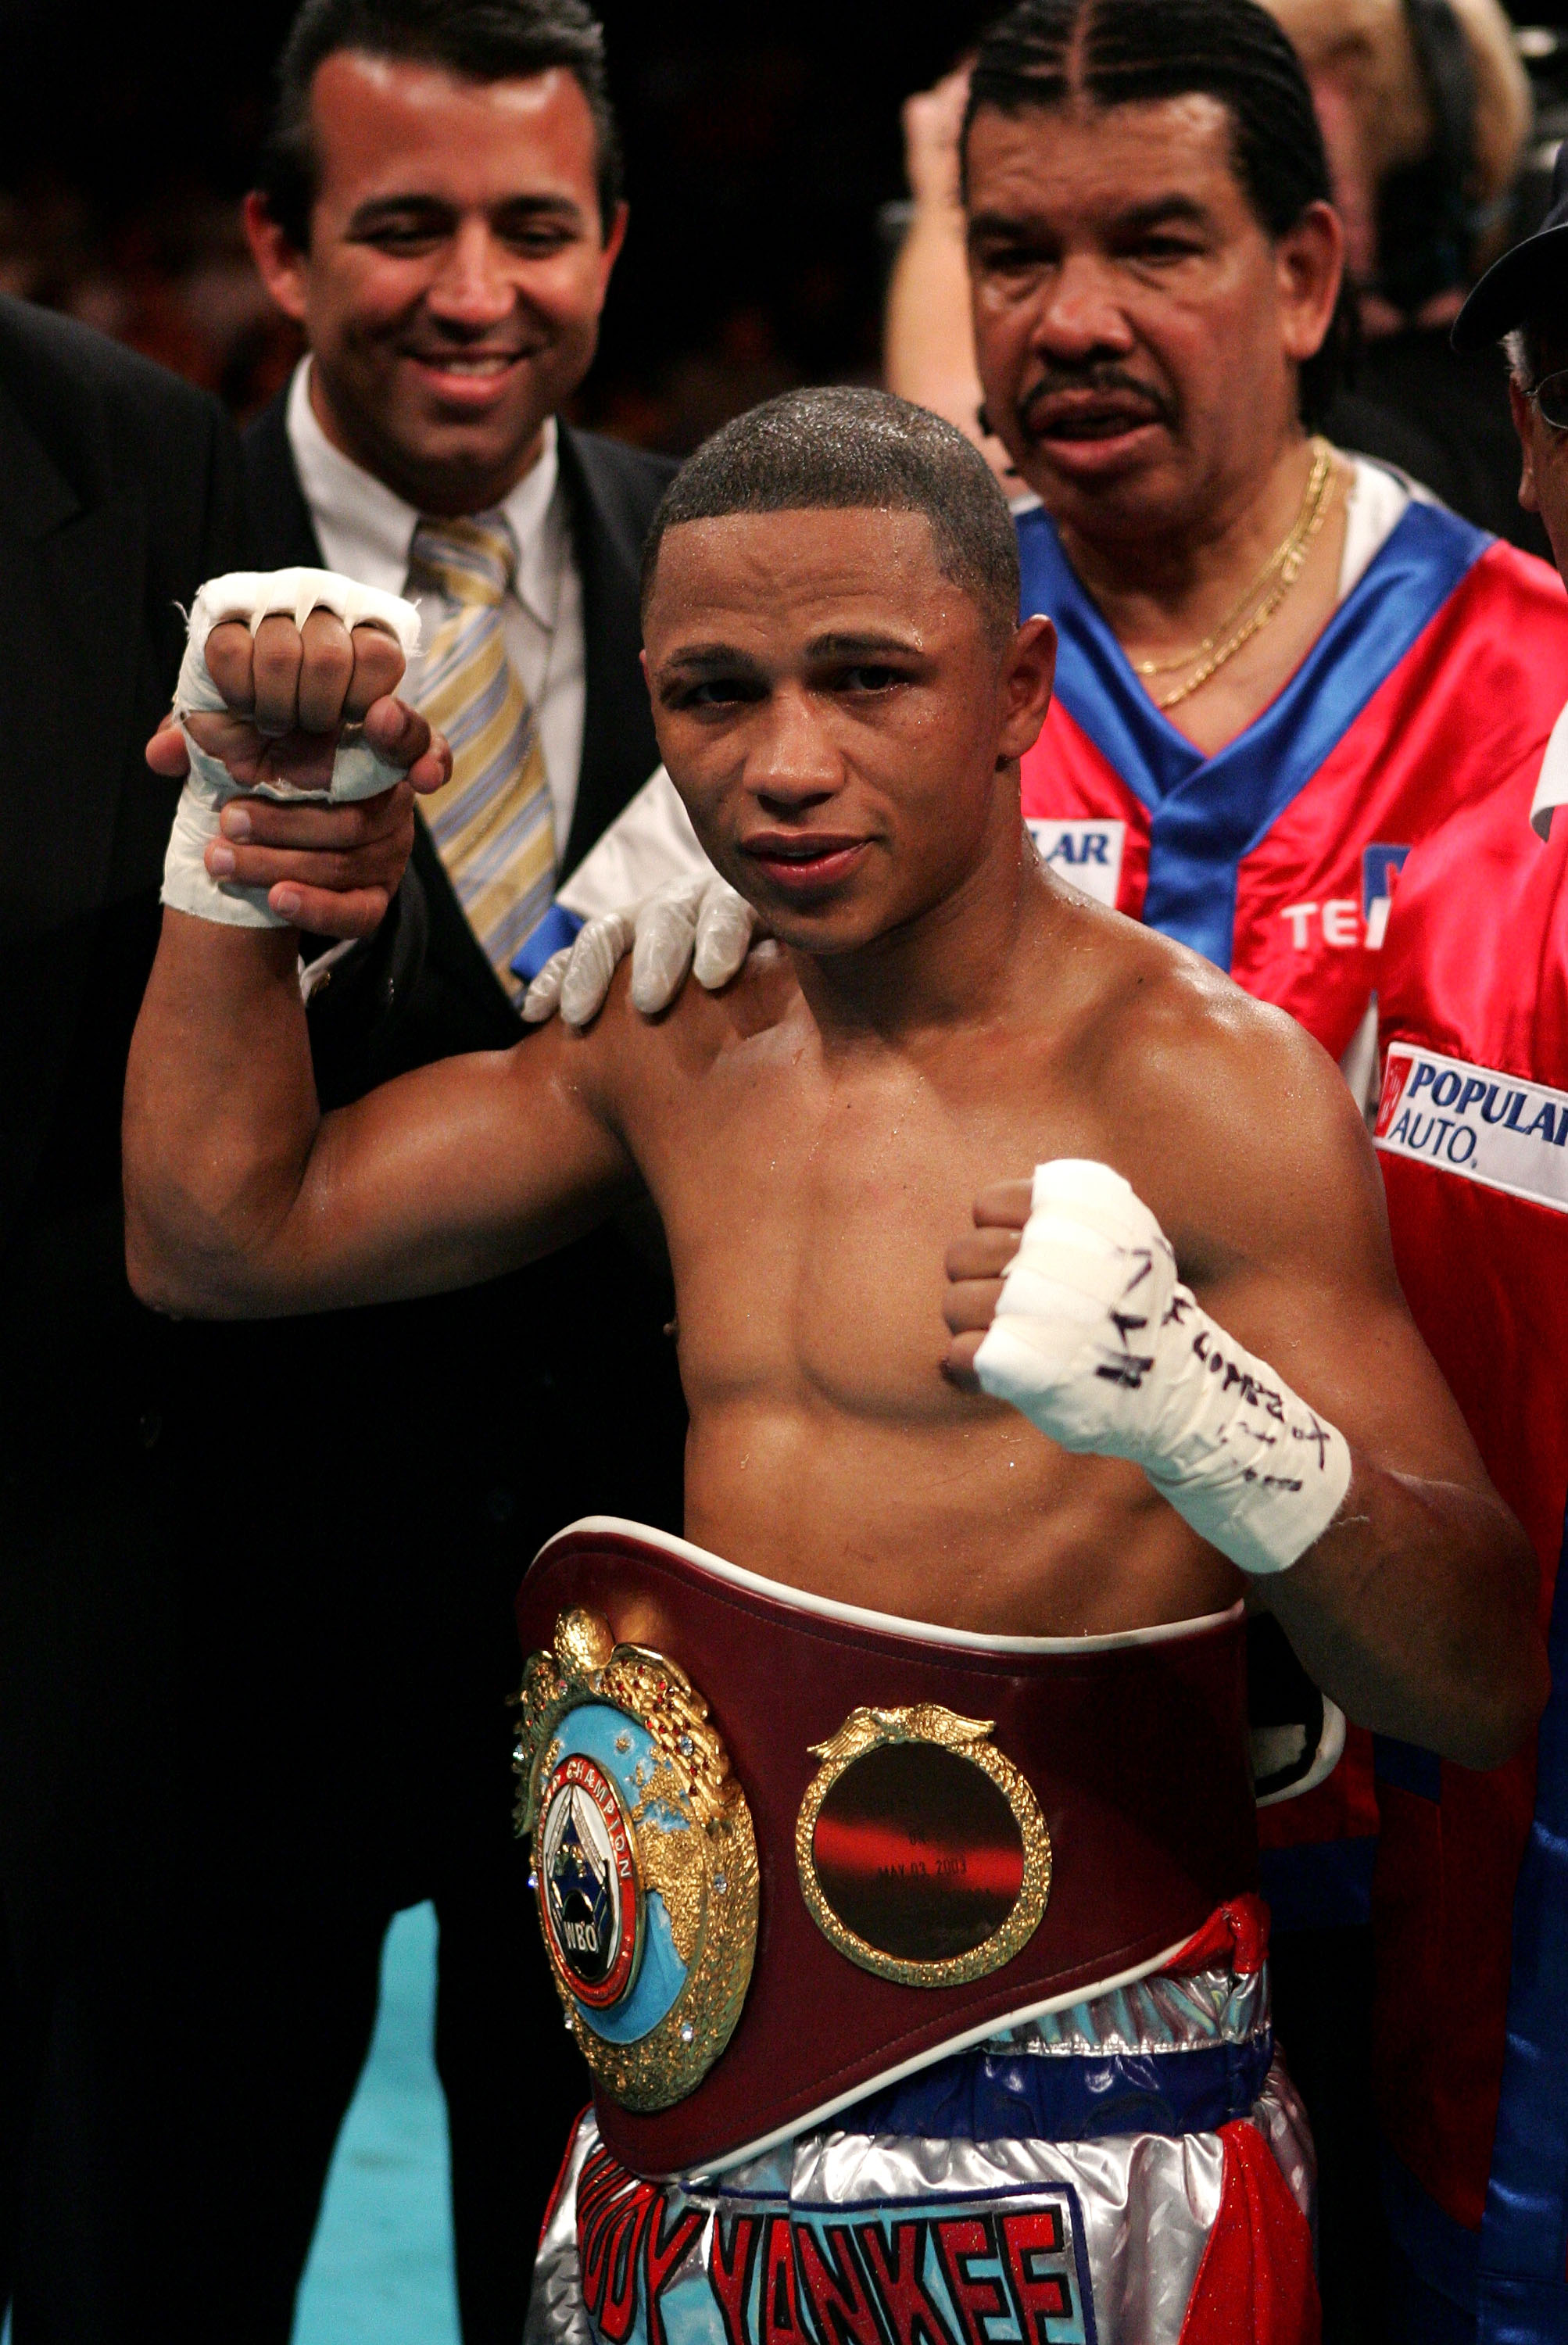 ATLANTIC CITY, NJ - JUNE 25:  Ivan Calderon of Puerto Rico poses after defeating Gerardo Verde of Mexico as he remains the WBO Minimumweight Champion at Boardwalk Hall on June 25, 2005 in Atlantic City, New Jersey.  (Photo by Al Bello/Getty Images)